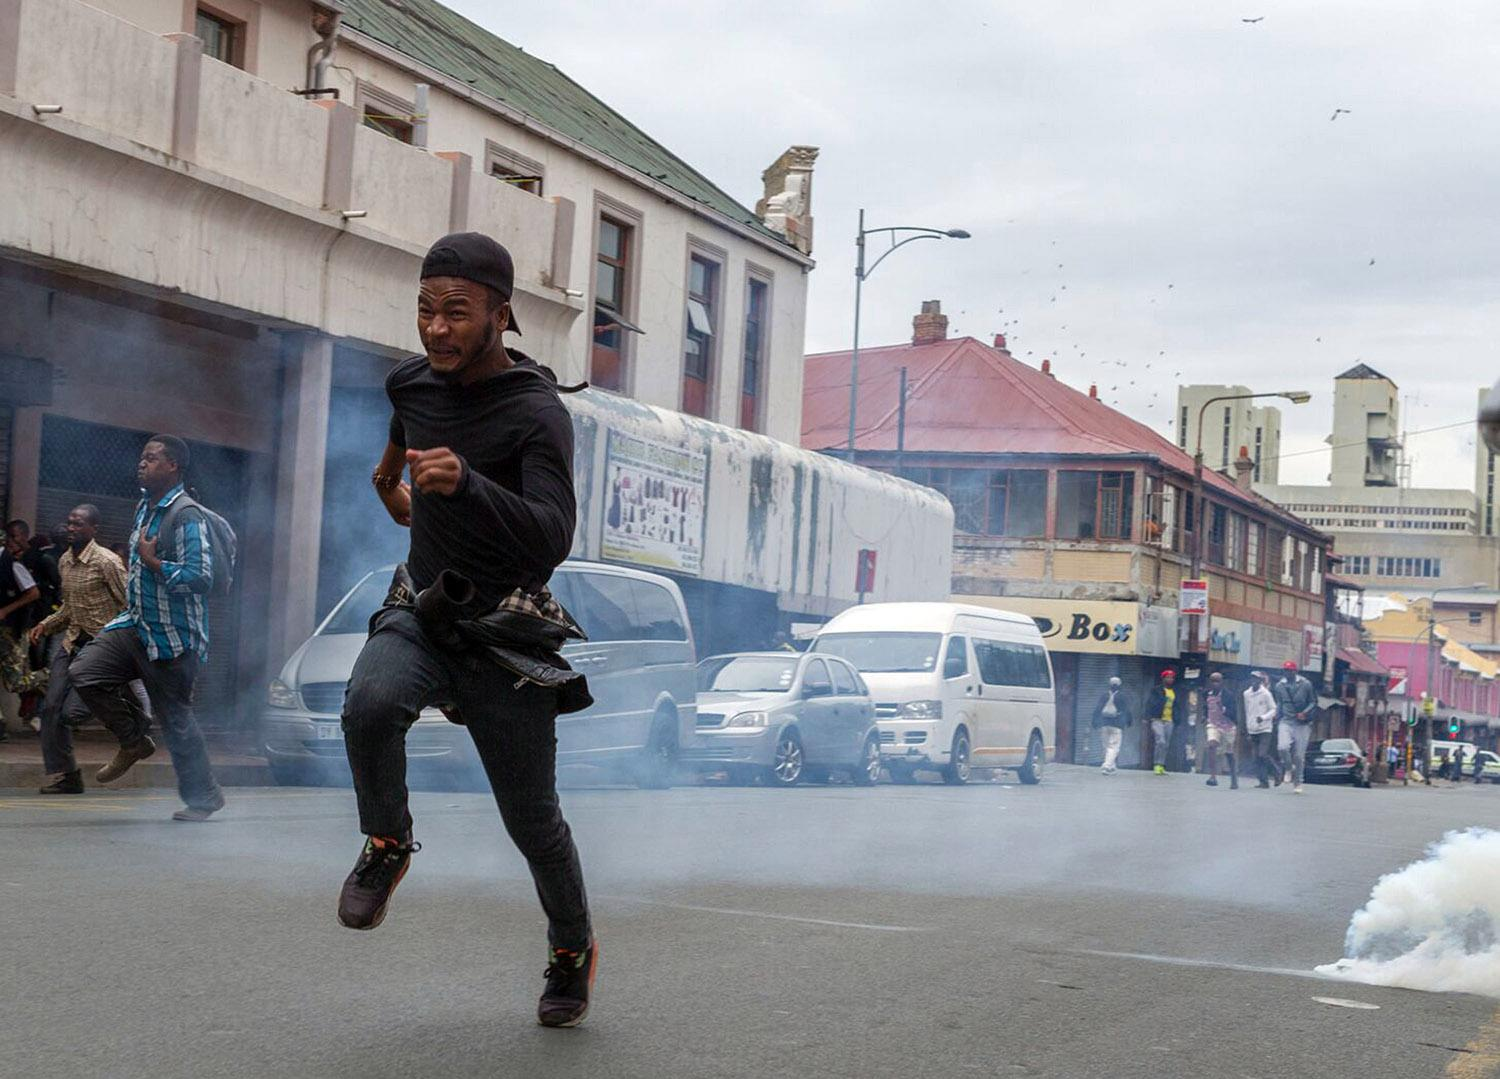 <p>Members of the ANC Youth League flee from teargas and rubber bullets being fired by police, at the end of a march by the main opposition Democratic Alliance party in Johannesburg, April 7, 2017. Thousands of South Africans demonstrated in major cities against President Jacob Zuma. Zuma's dismissal of the finance minister has fueled concerns over government corruption and a struggling economy. (Photo: Yeshiel Panchia/AP) </p>